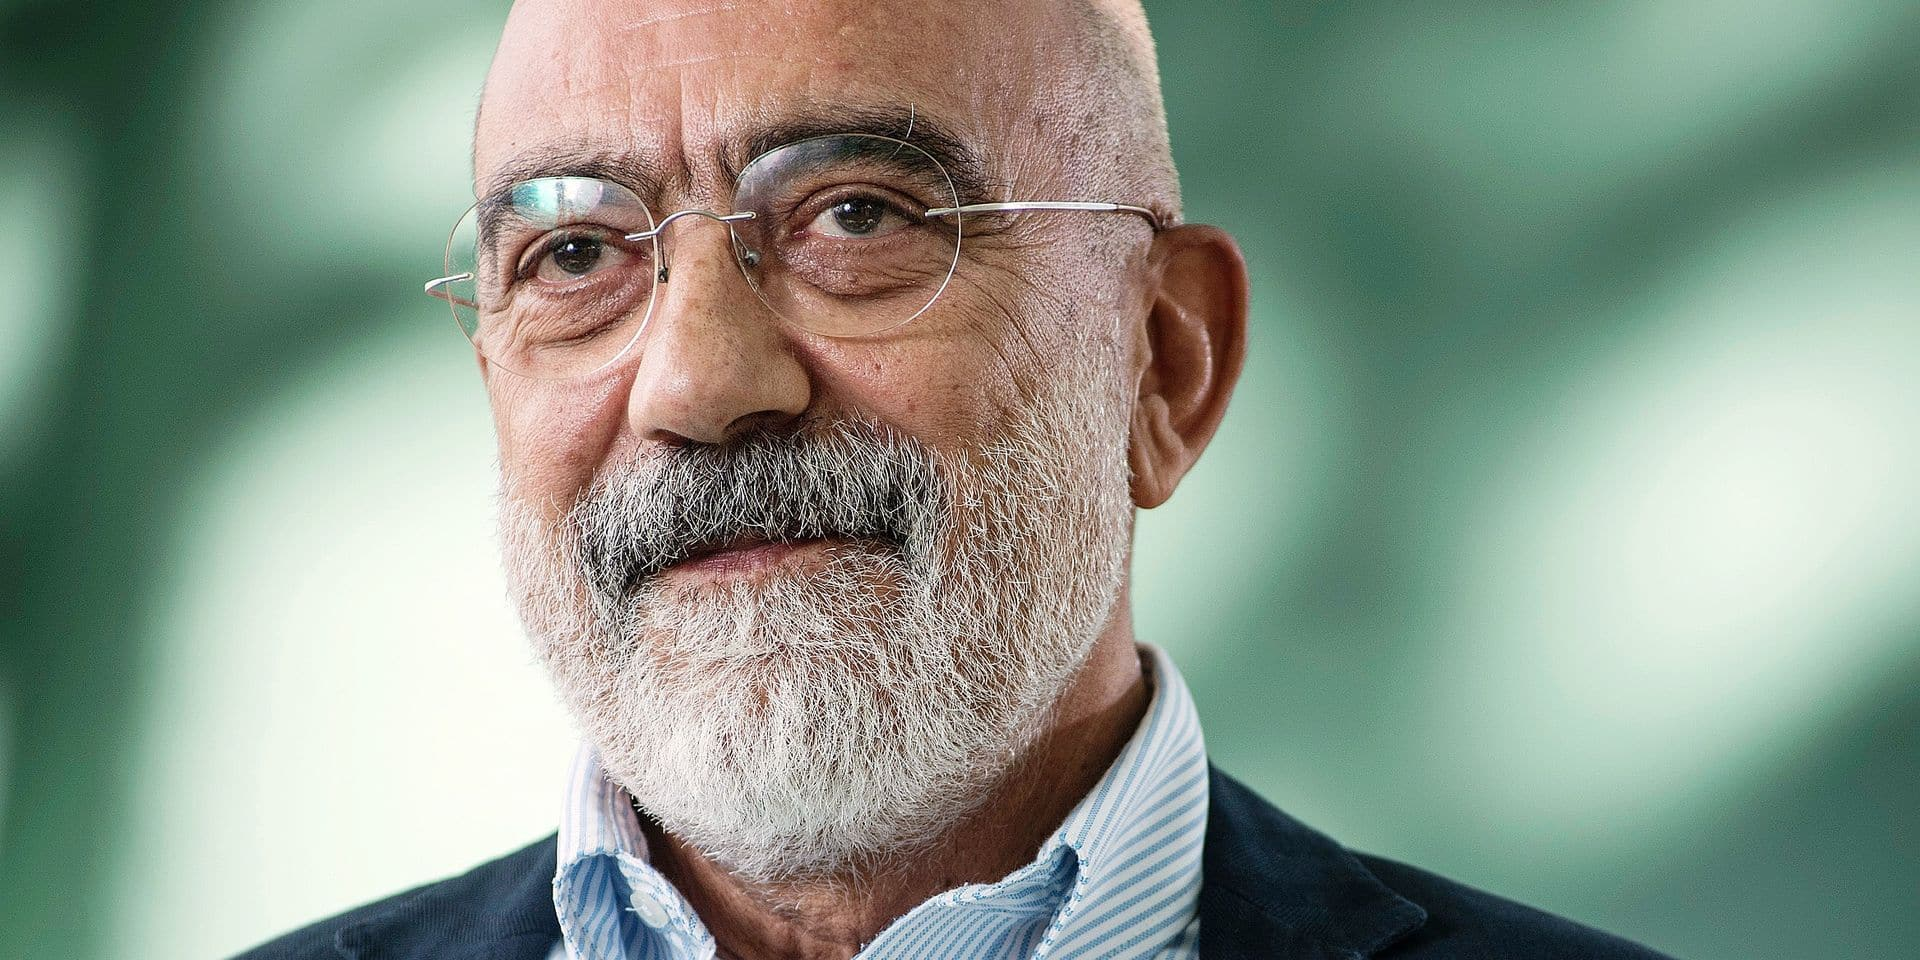 EDINBURGH, SCOTLAND, Thursday 27th, AUGUST 2015: Turkish journalist and author Ahmet Altan appears at the Edinburgh International Book Festival. The two weeks event is the world's biggest literary festival of its kind celebrated annually in Edinburgh, which in 2004 became the World's first UNESCO city of literature. Reporters / Photoshot